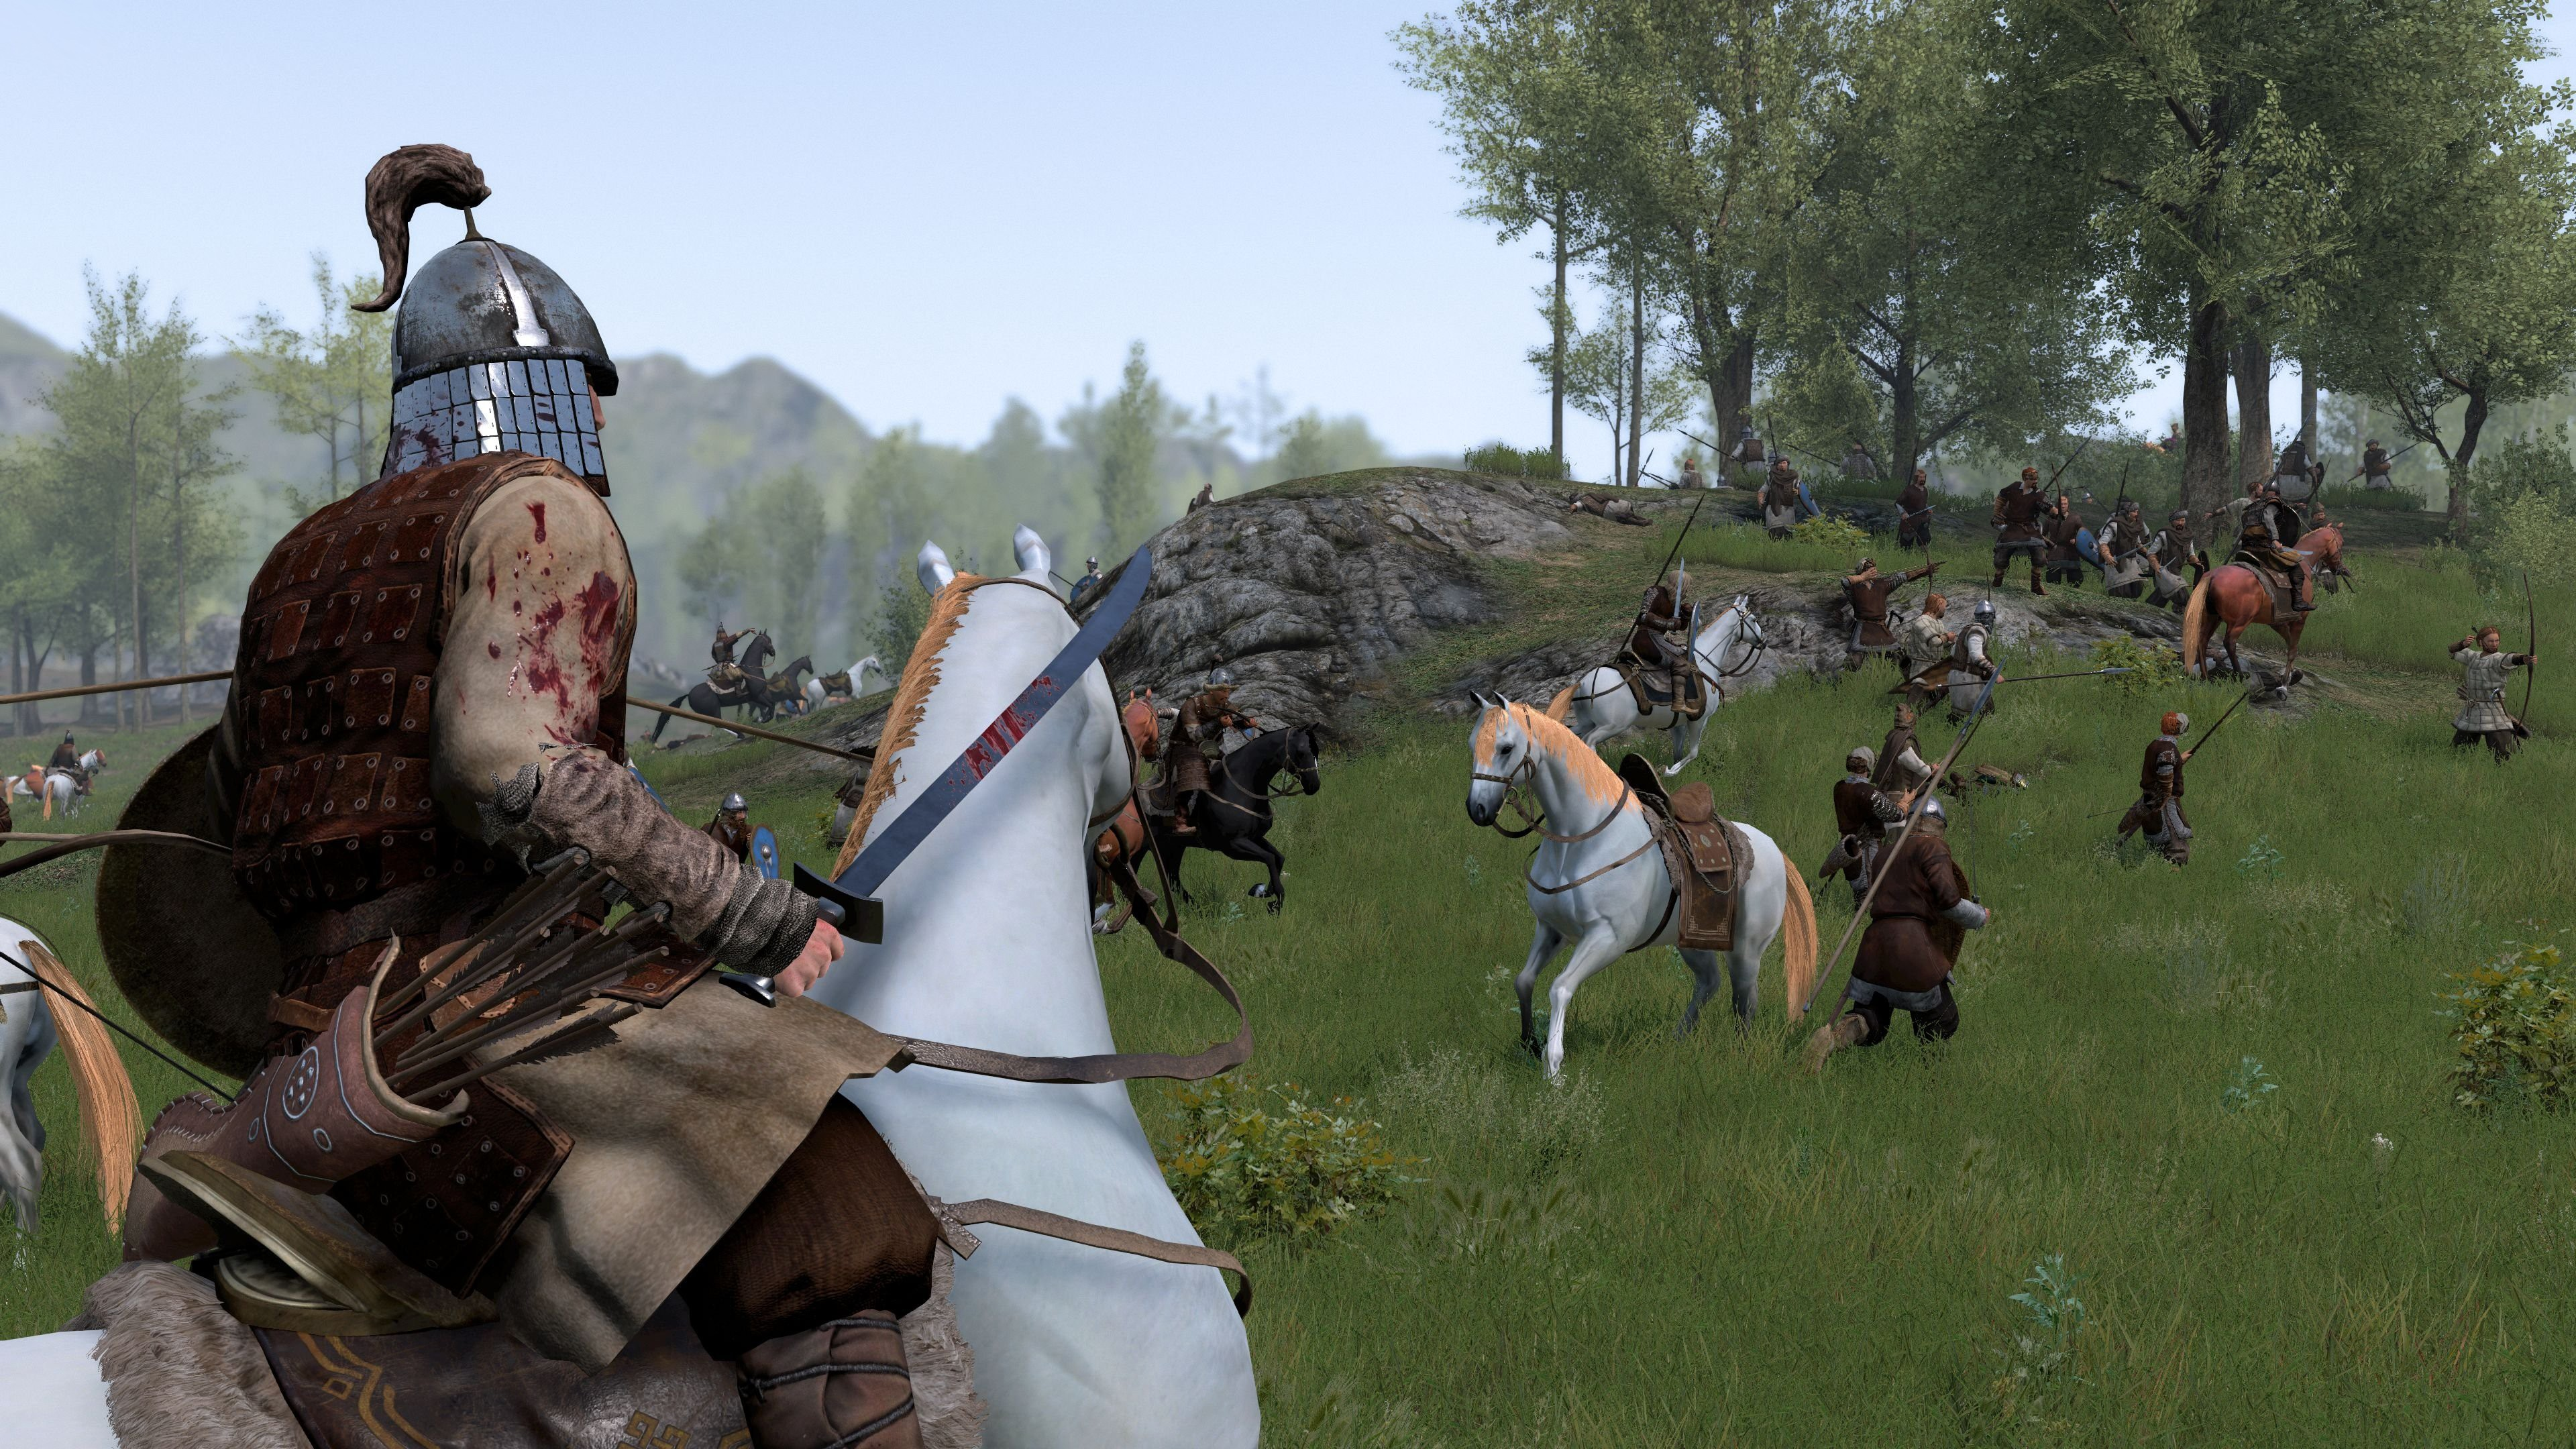 Wallpaper Mount Blade Ii Bannerlord Screenshot 4k